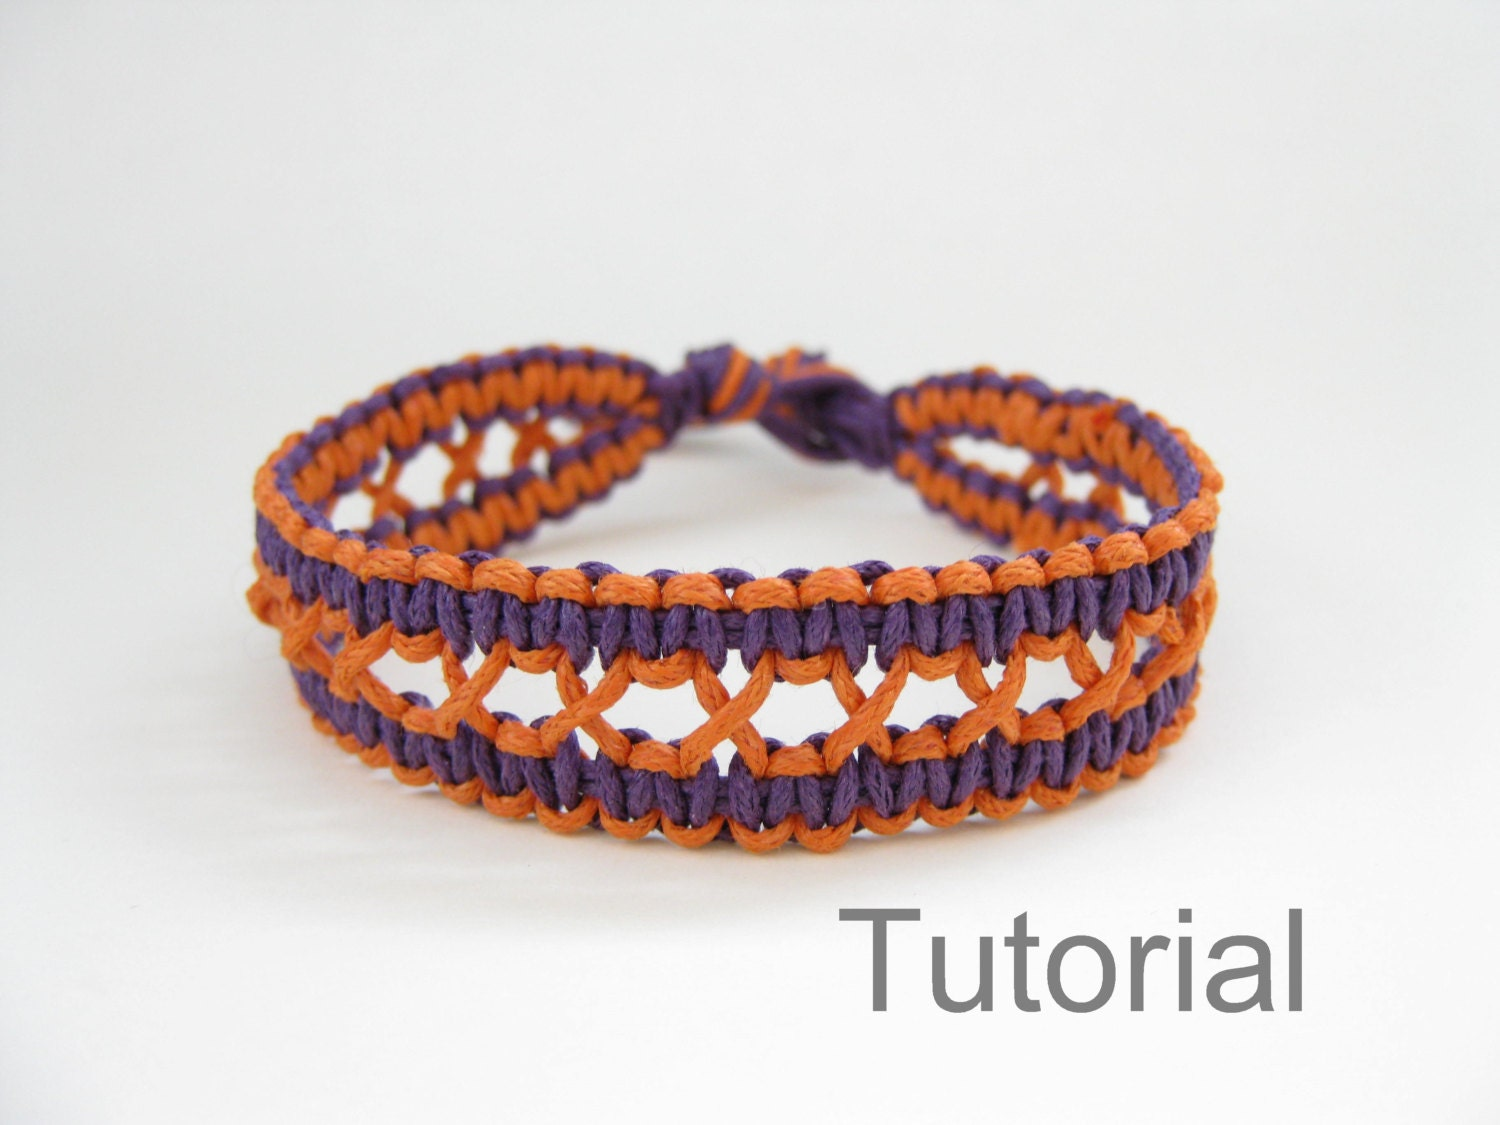 Knotted bracelet pattern macrame tutorial pdf purple orange jewelry ...